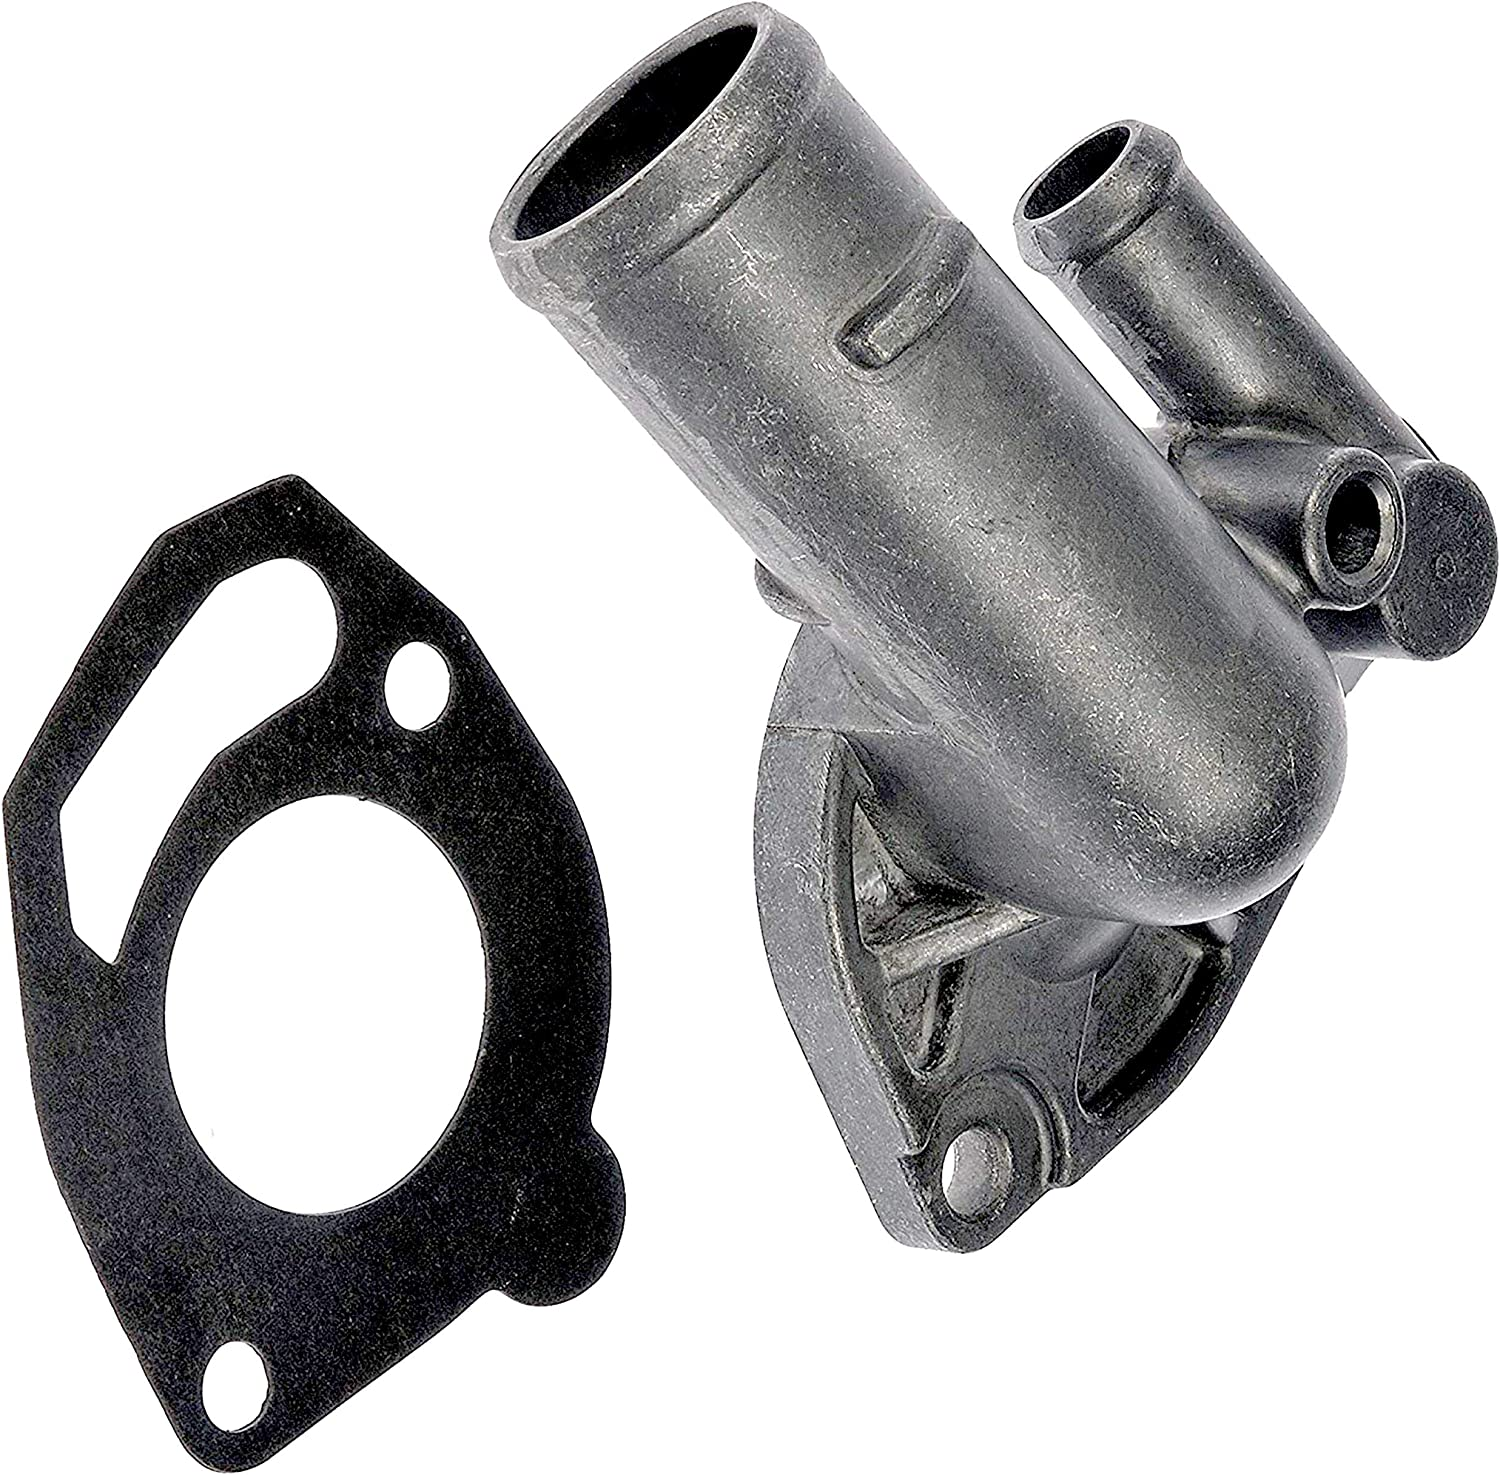 Engine Coolant Thermostat Housing for Jeep Wrangler TJ Grand Cherokee 53006192